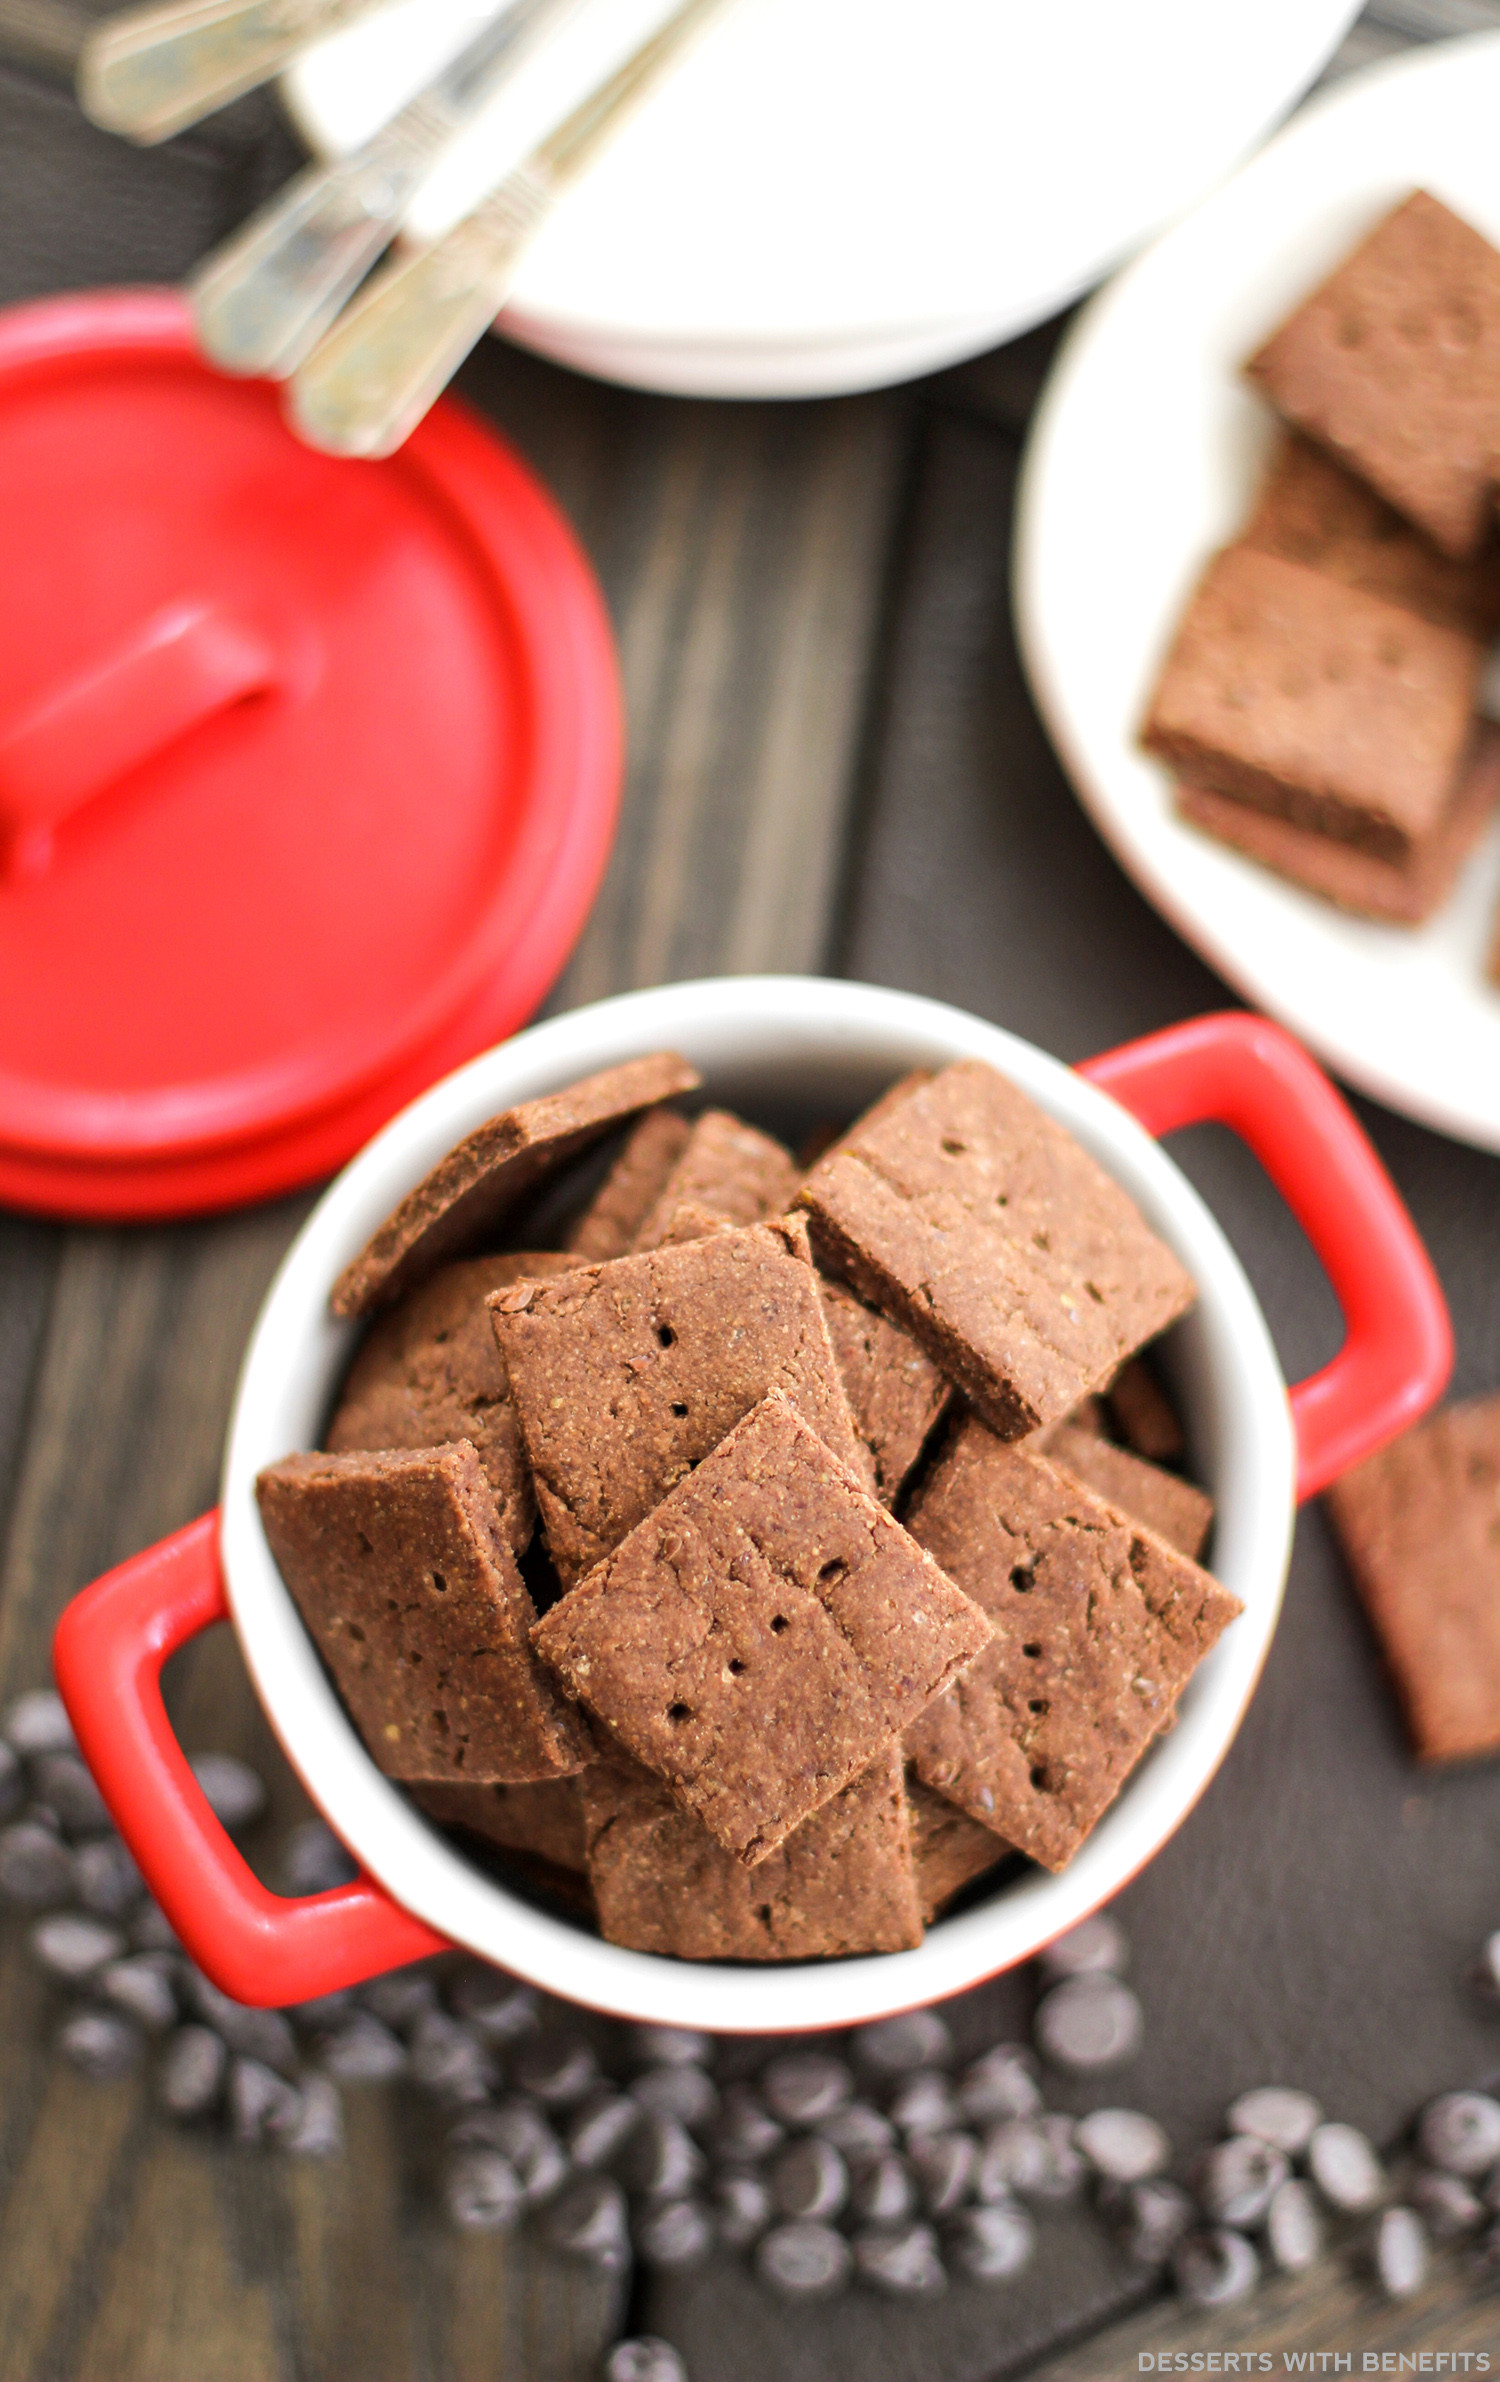 High Fiber Desserts  Desserts With Benefits Healthy Chocolate Flax Crackers